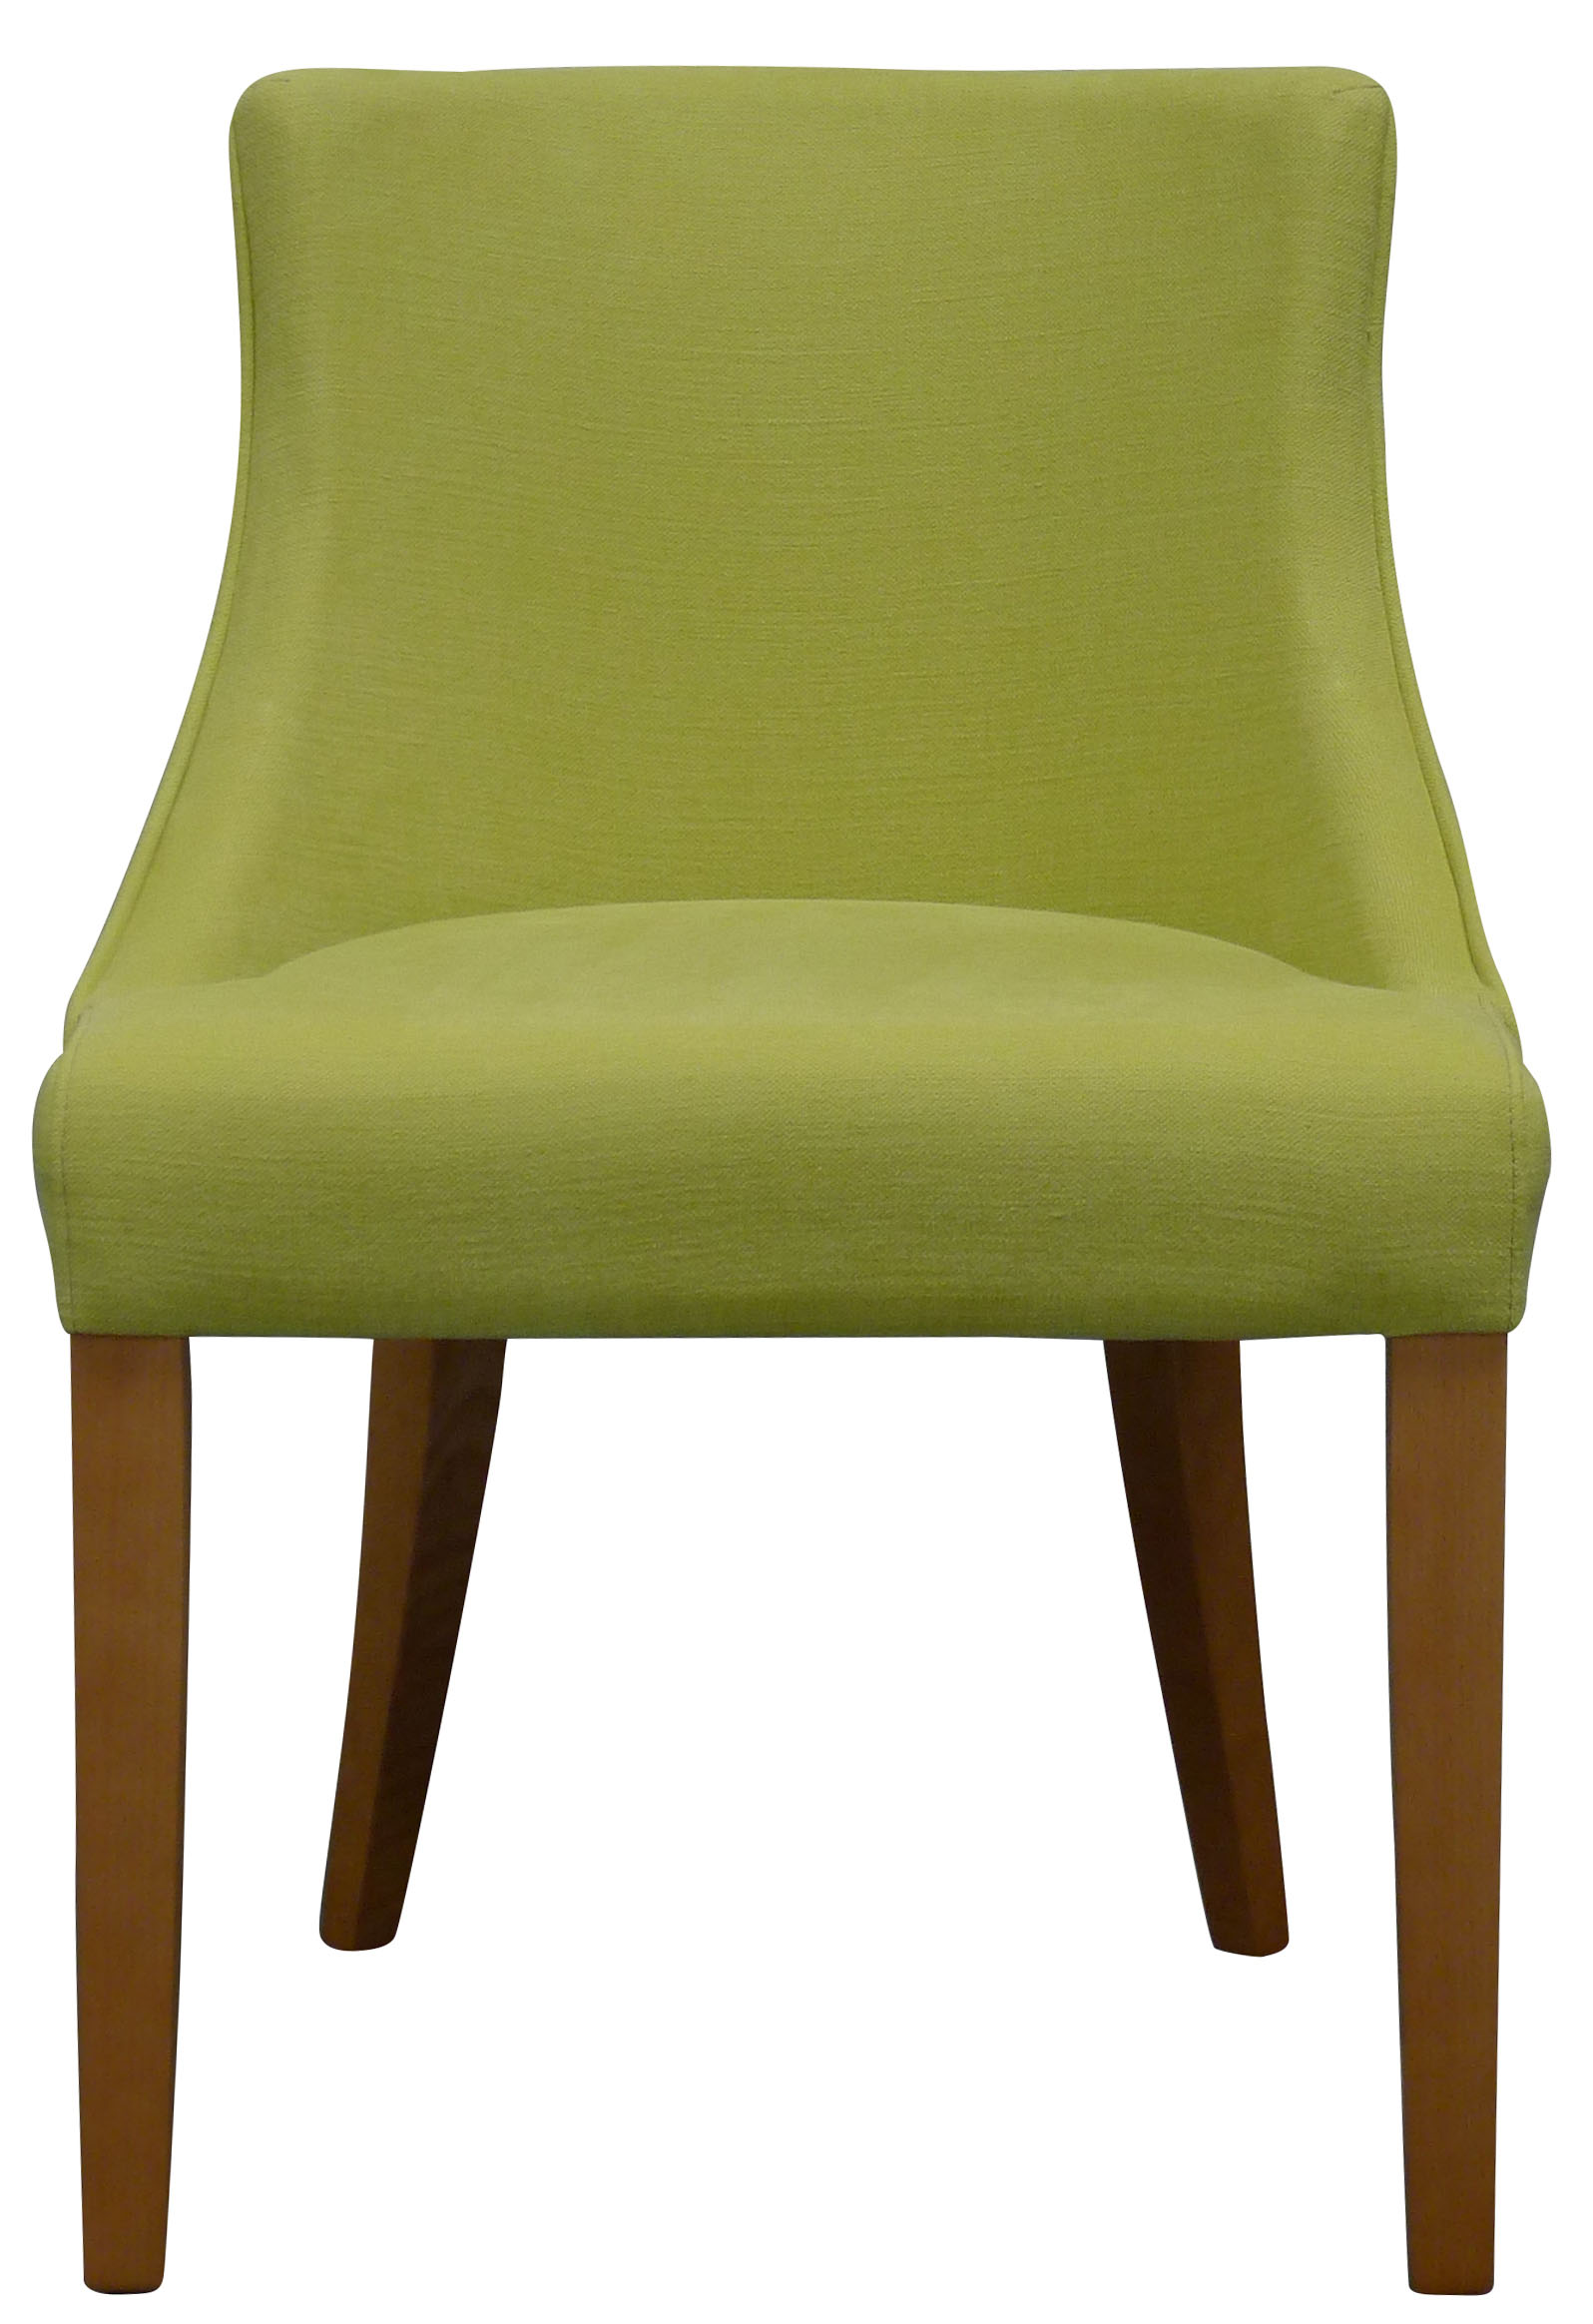 Dining Chair Fabric Dining Chairs Get Fabric Fresh Spring The Chair People